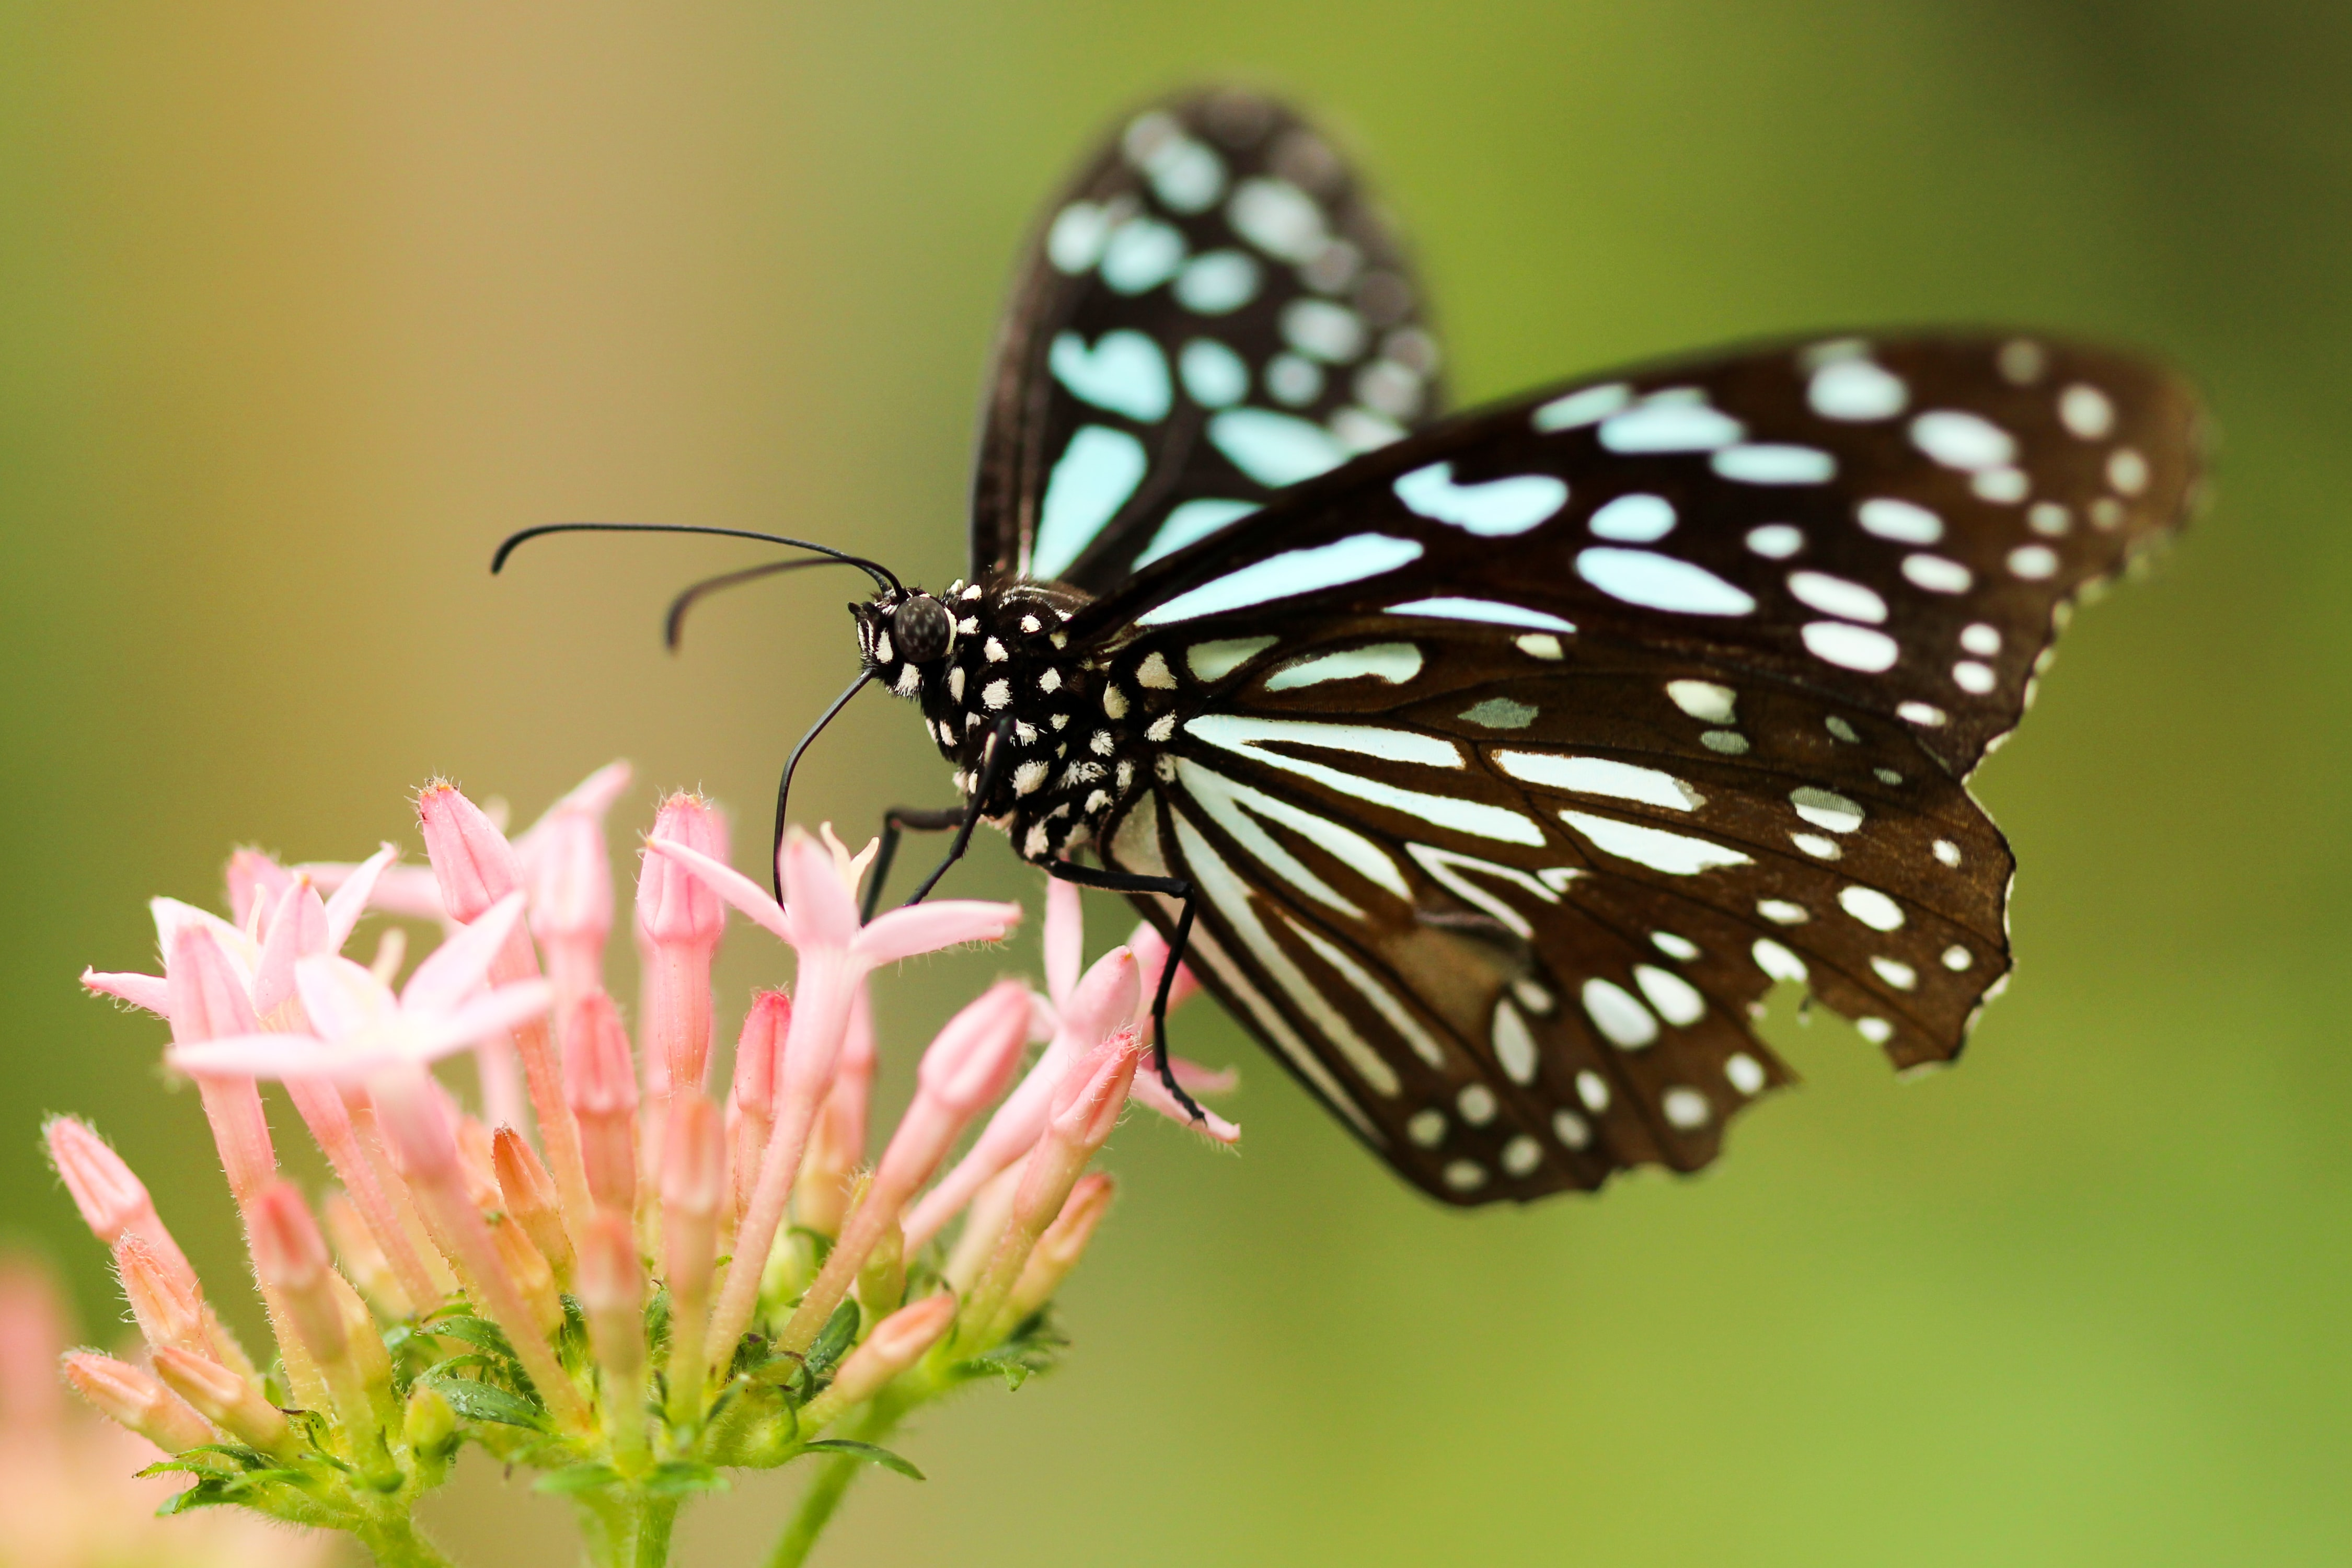 A black and white butterfly on a pink flower.